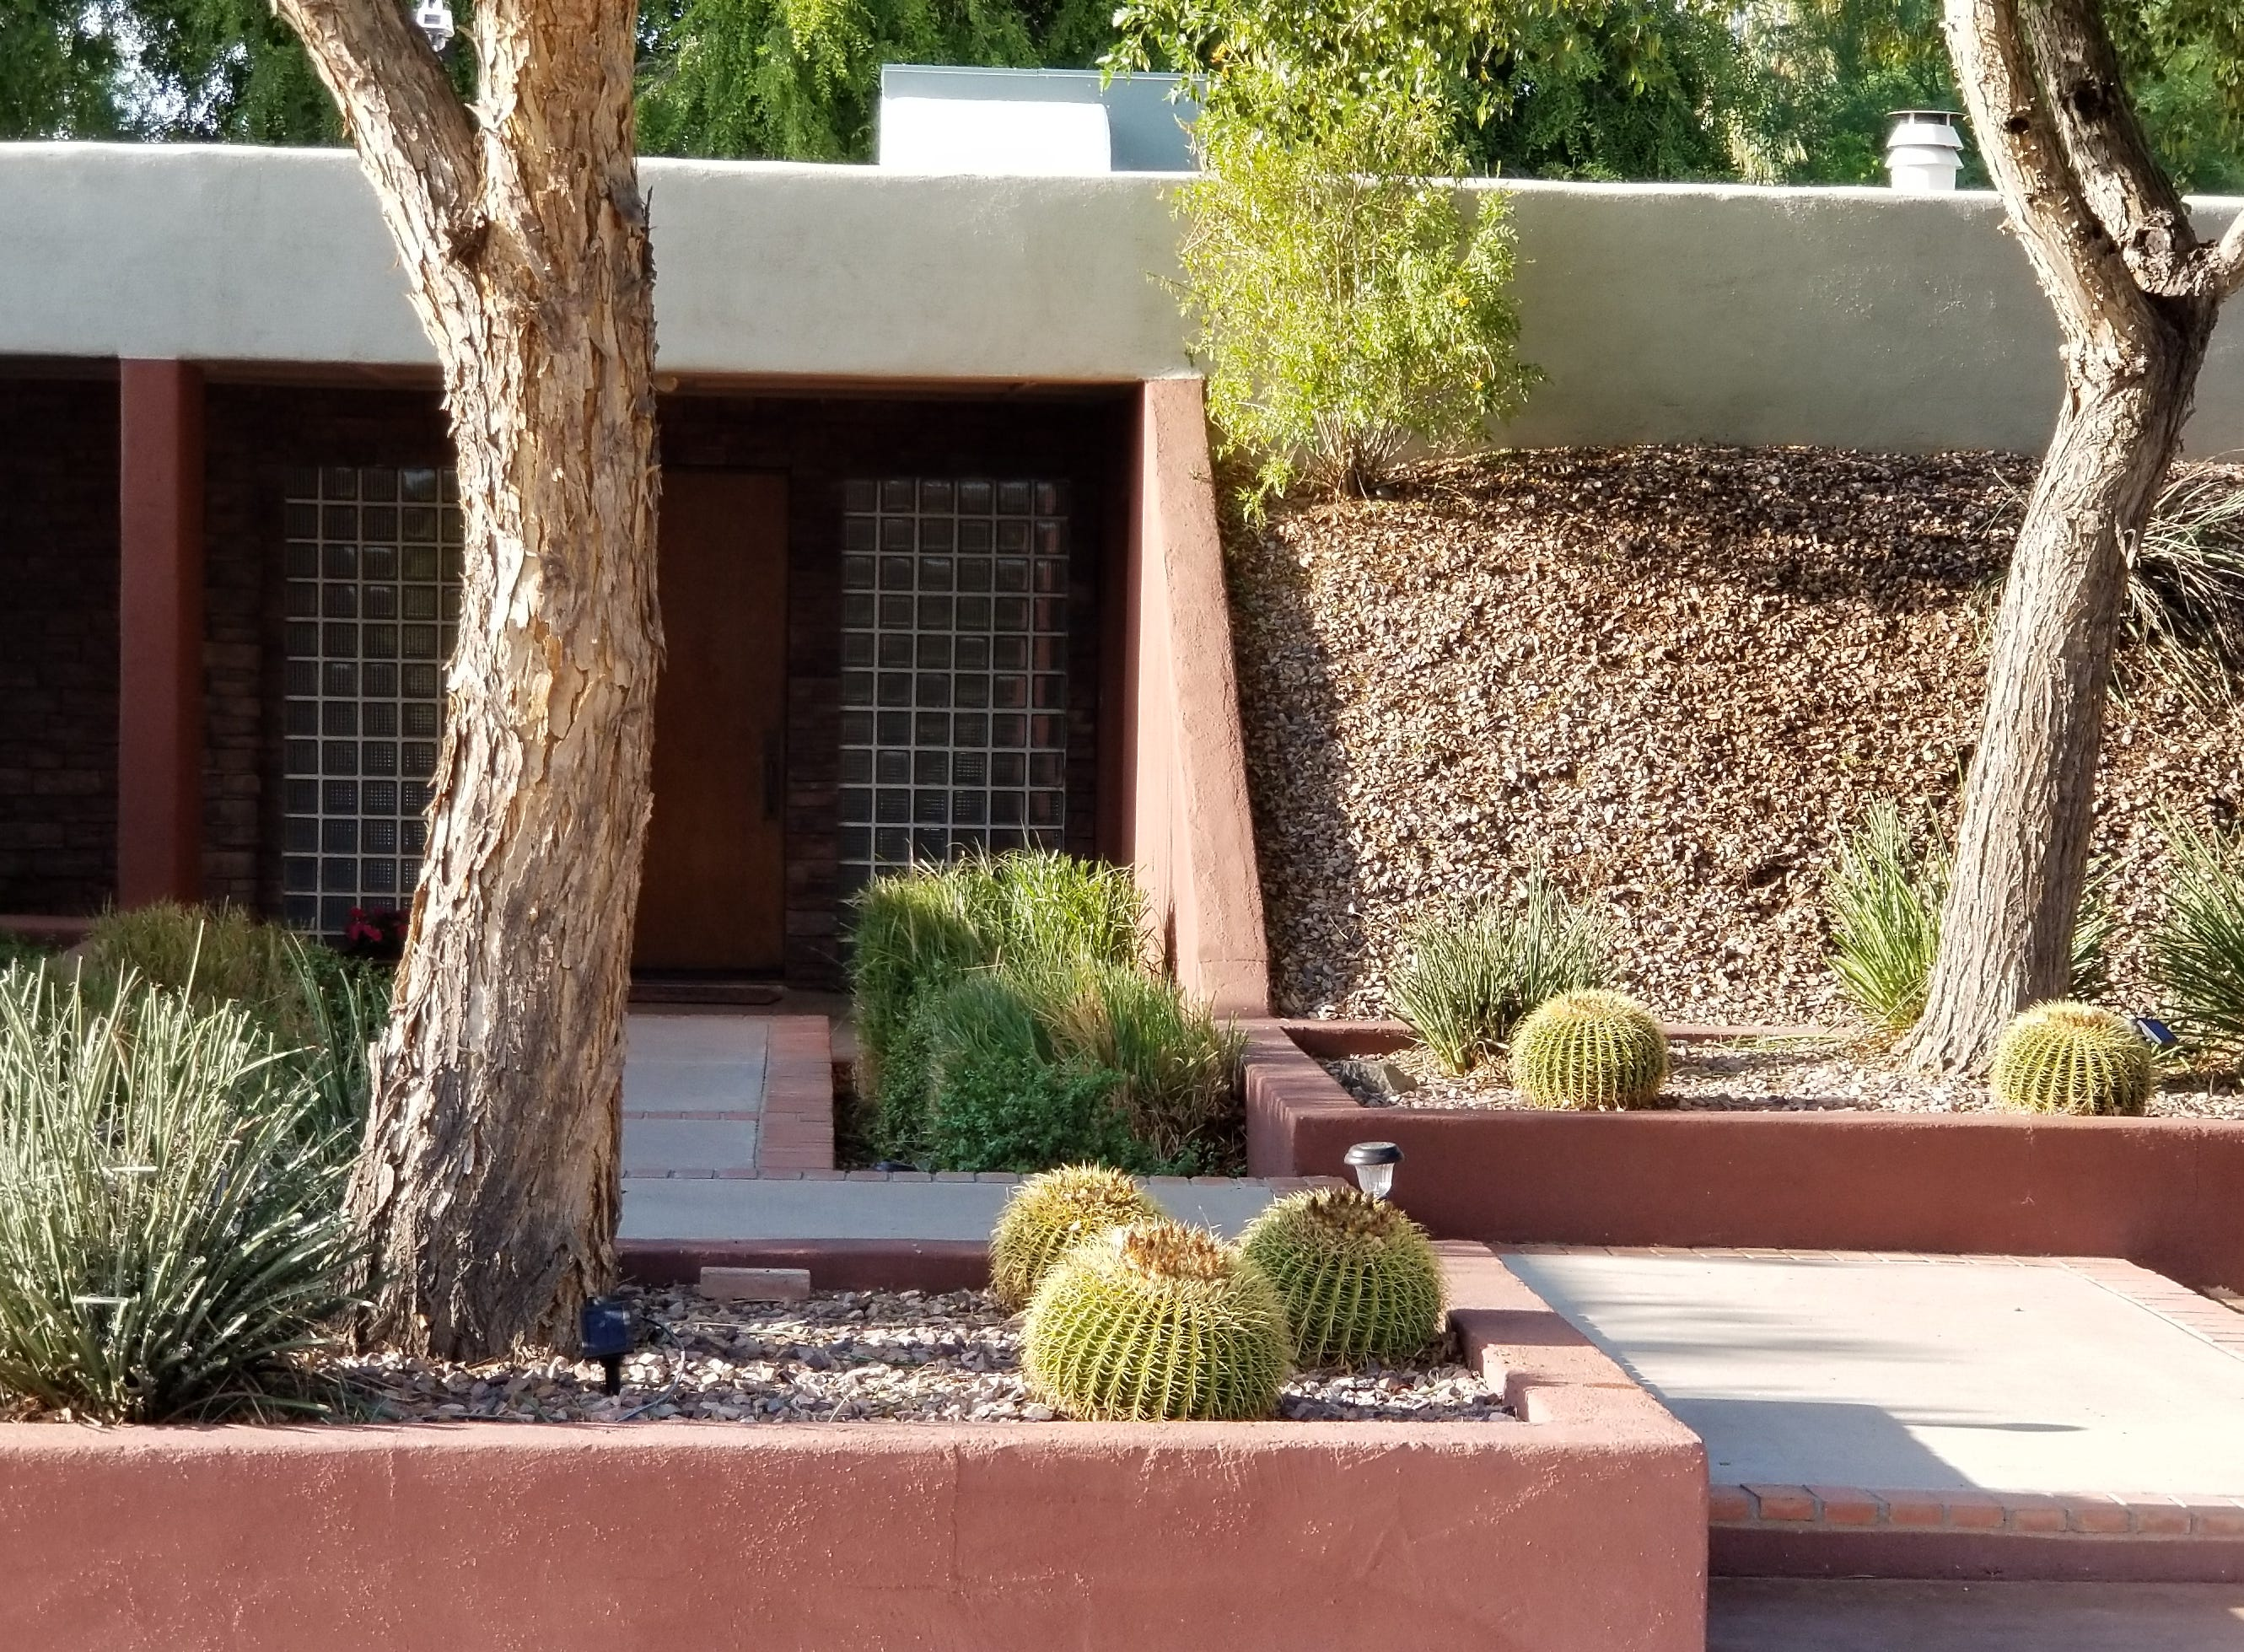 A natural flow of slightly raised concrete platforms and oversize planters with mature vegetation lead one subtly yet instinctively to the front door entrance of the property.